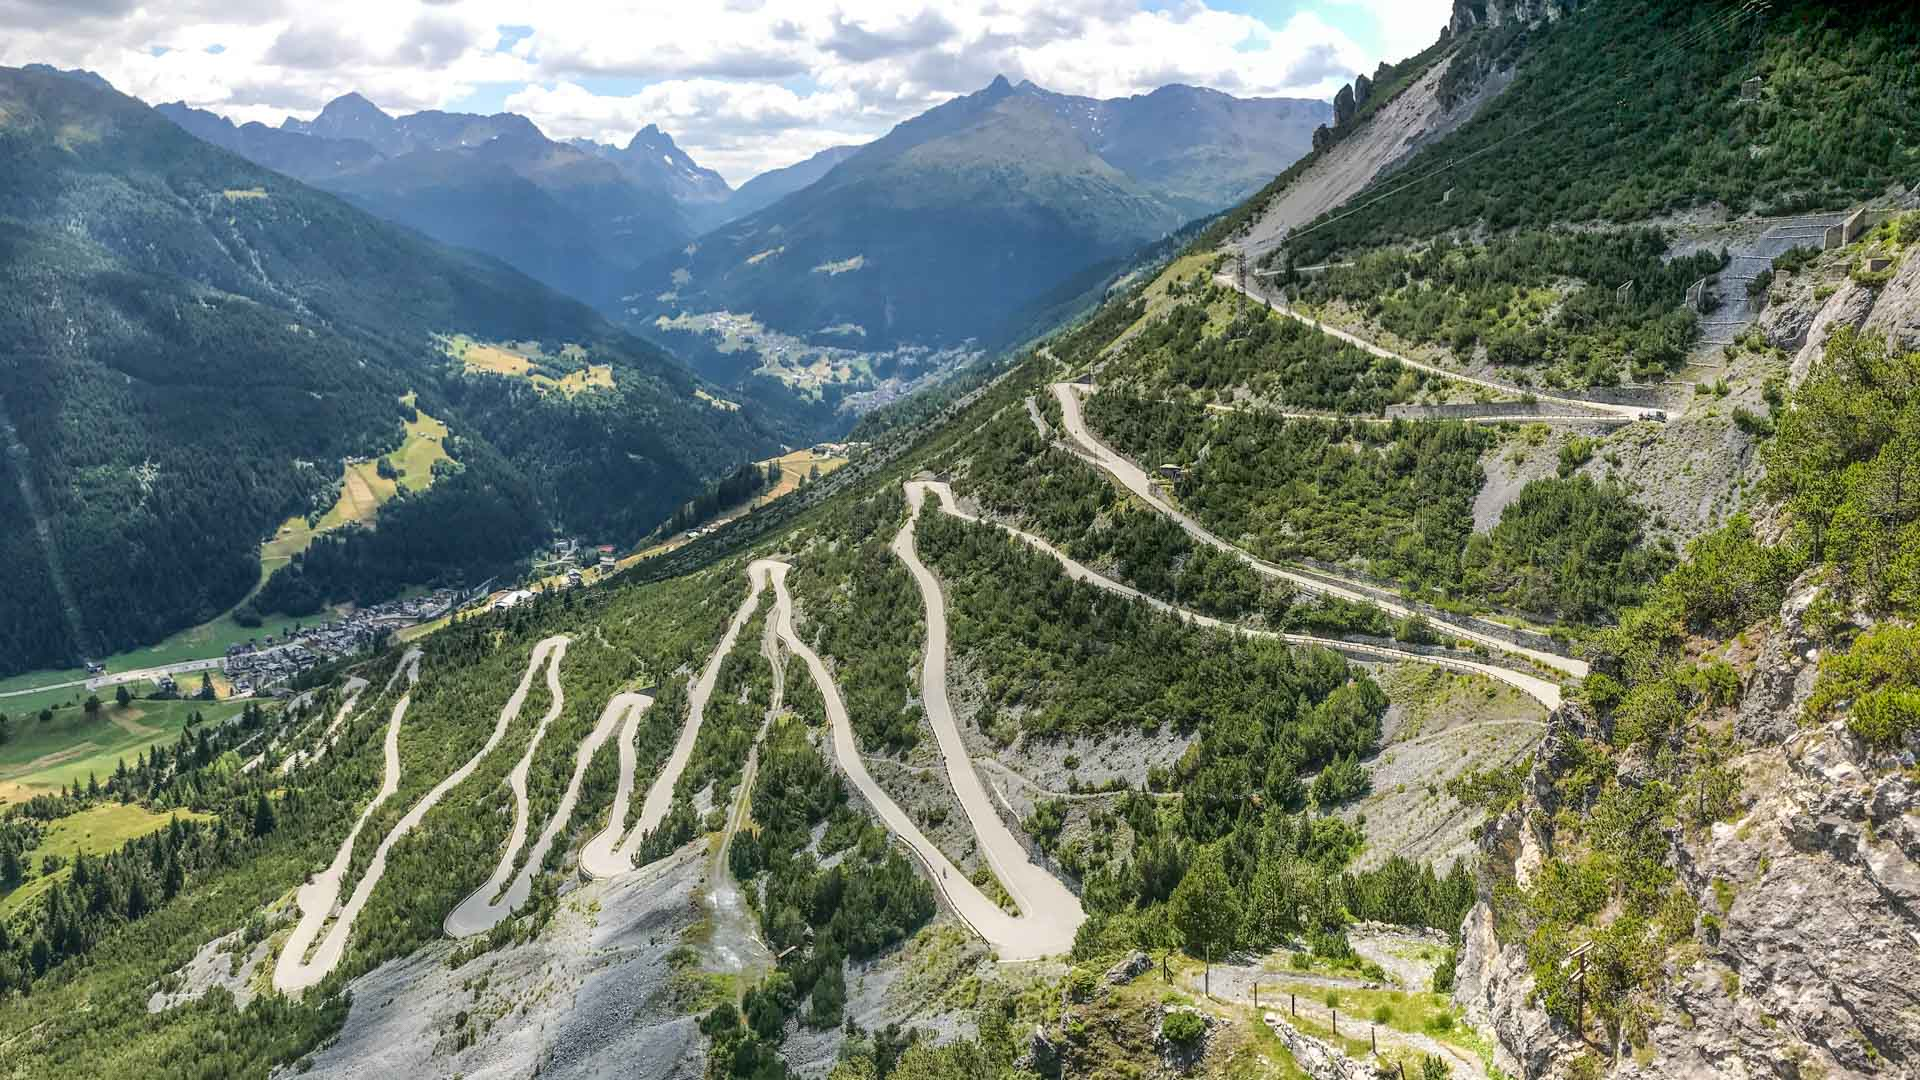 Cycling Lago di Cancano, Bormio, Italian Alps: GPX, map & tips